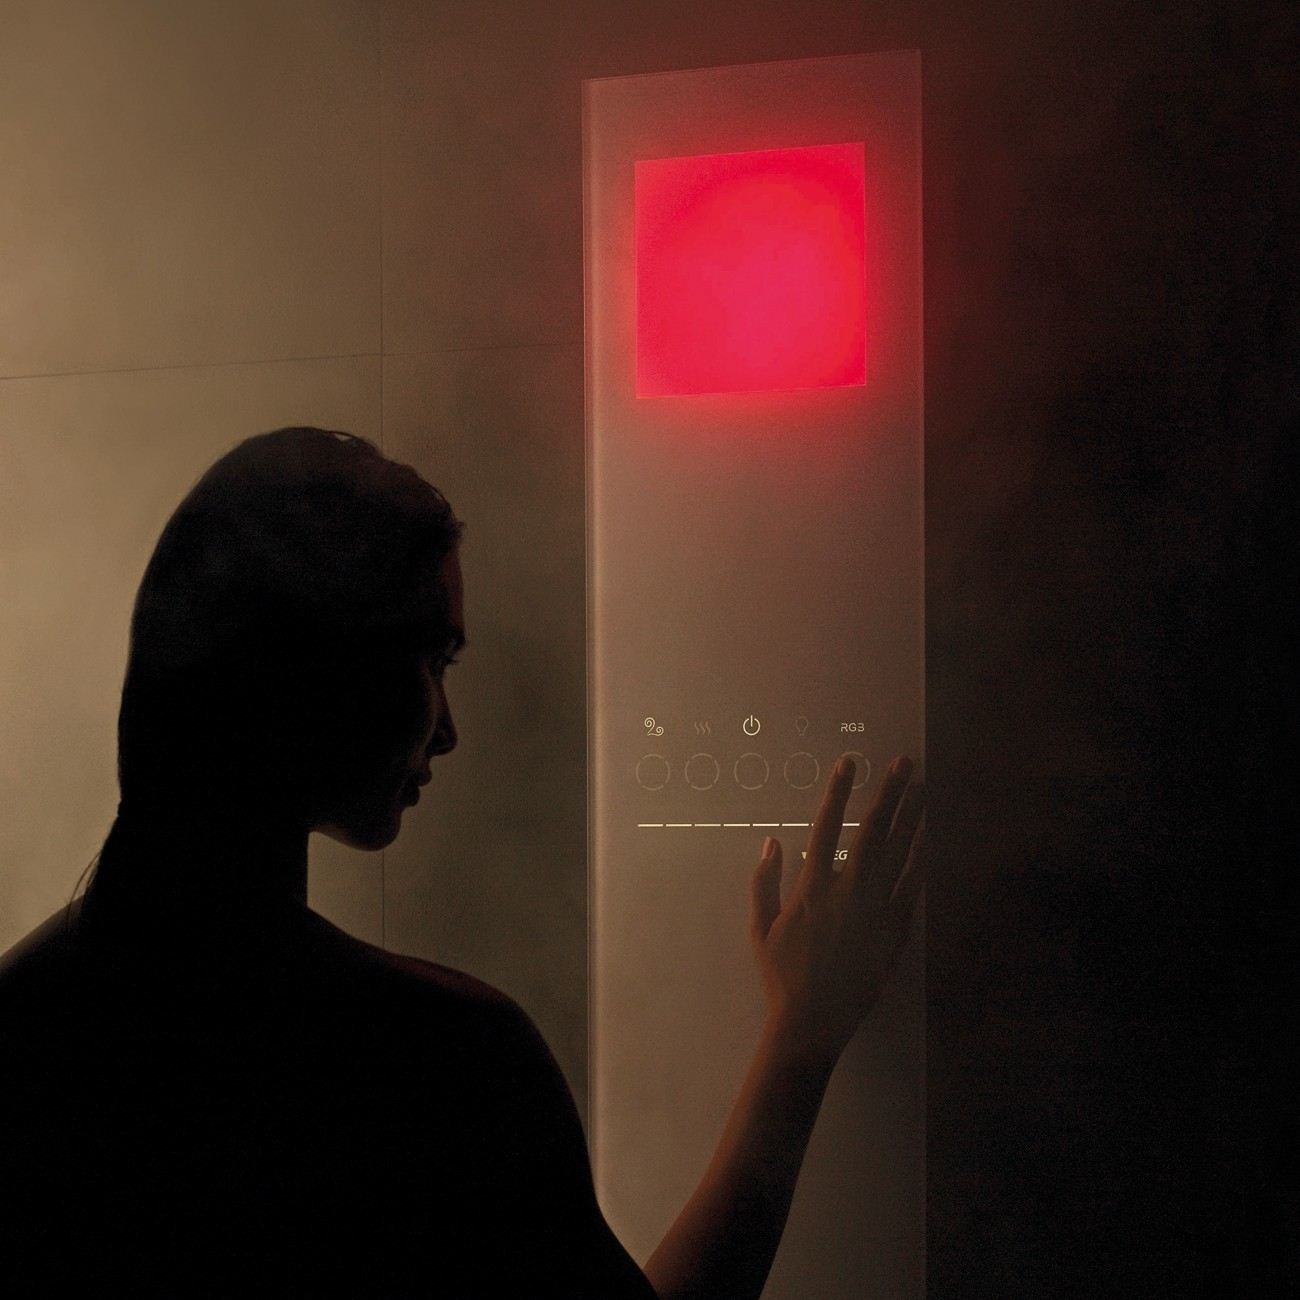 rs_effegibi_steam-room_hammam_touch-_-steam-30_720120_8